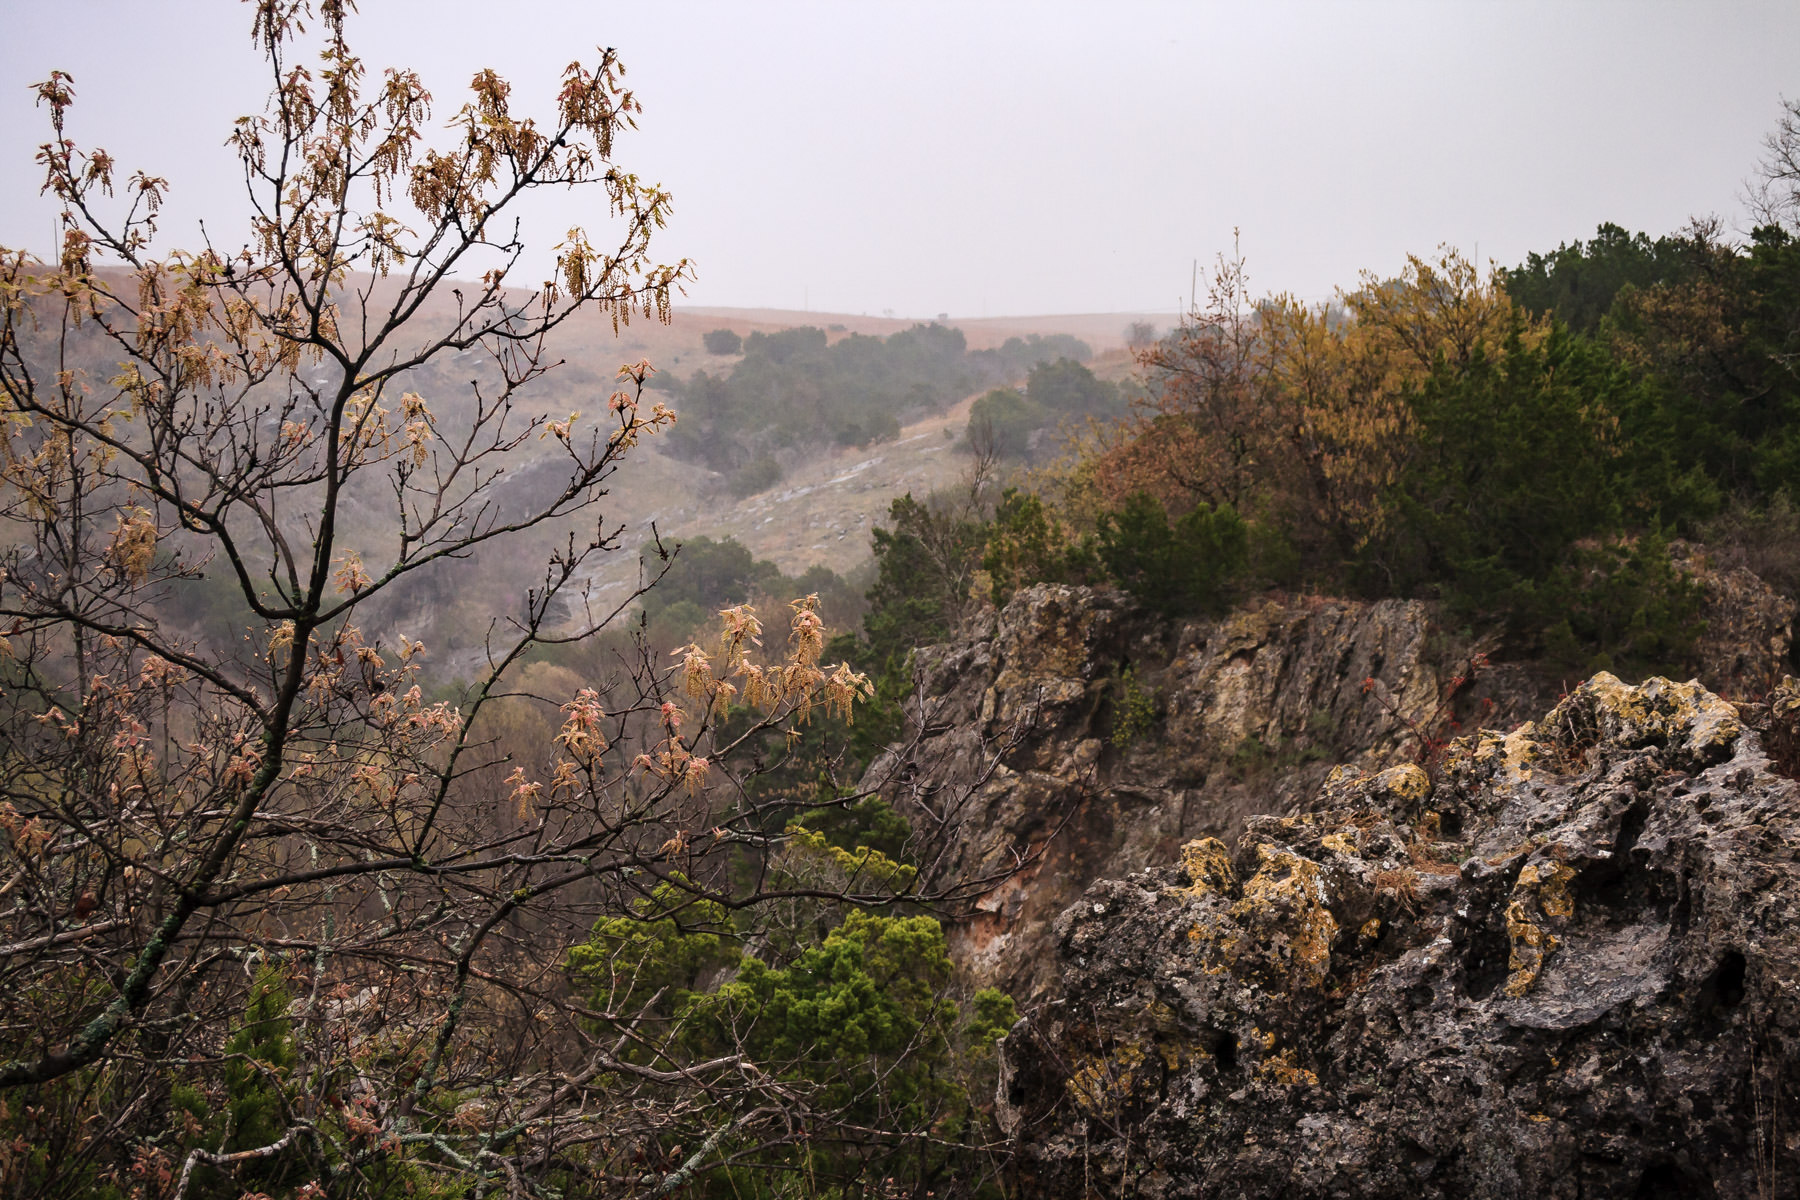 Fog roles into a valley at Turner Falls Park, Oklahoma.